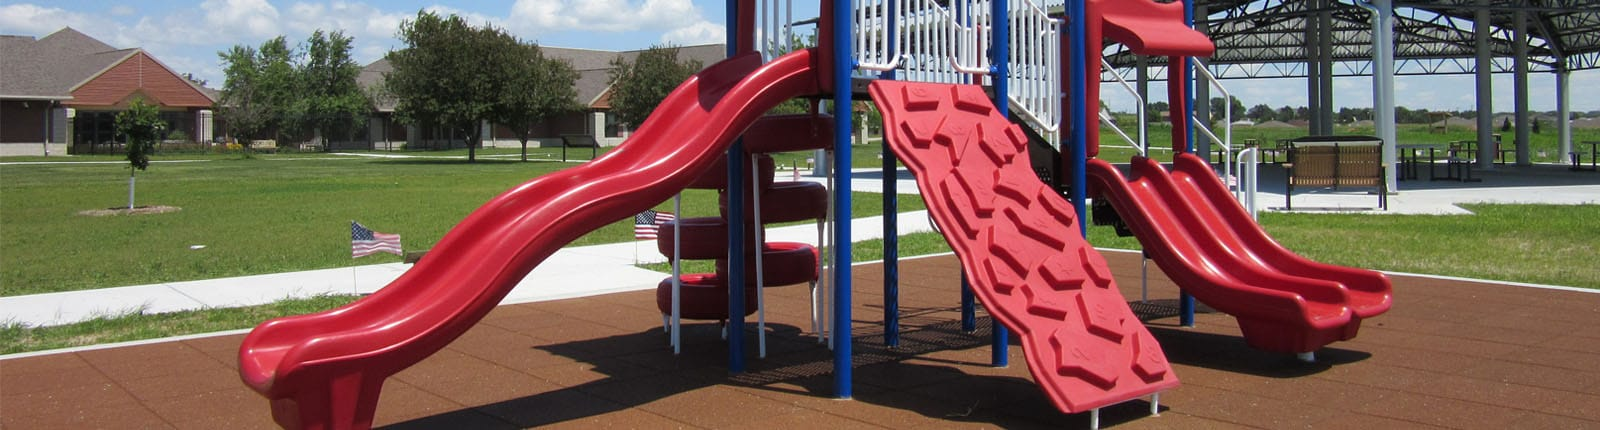 Surfacing Playground Equipment | Sterling West